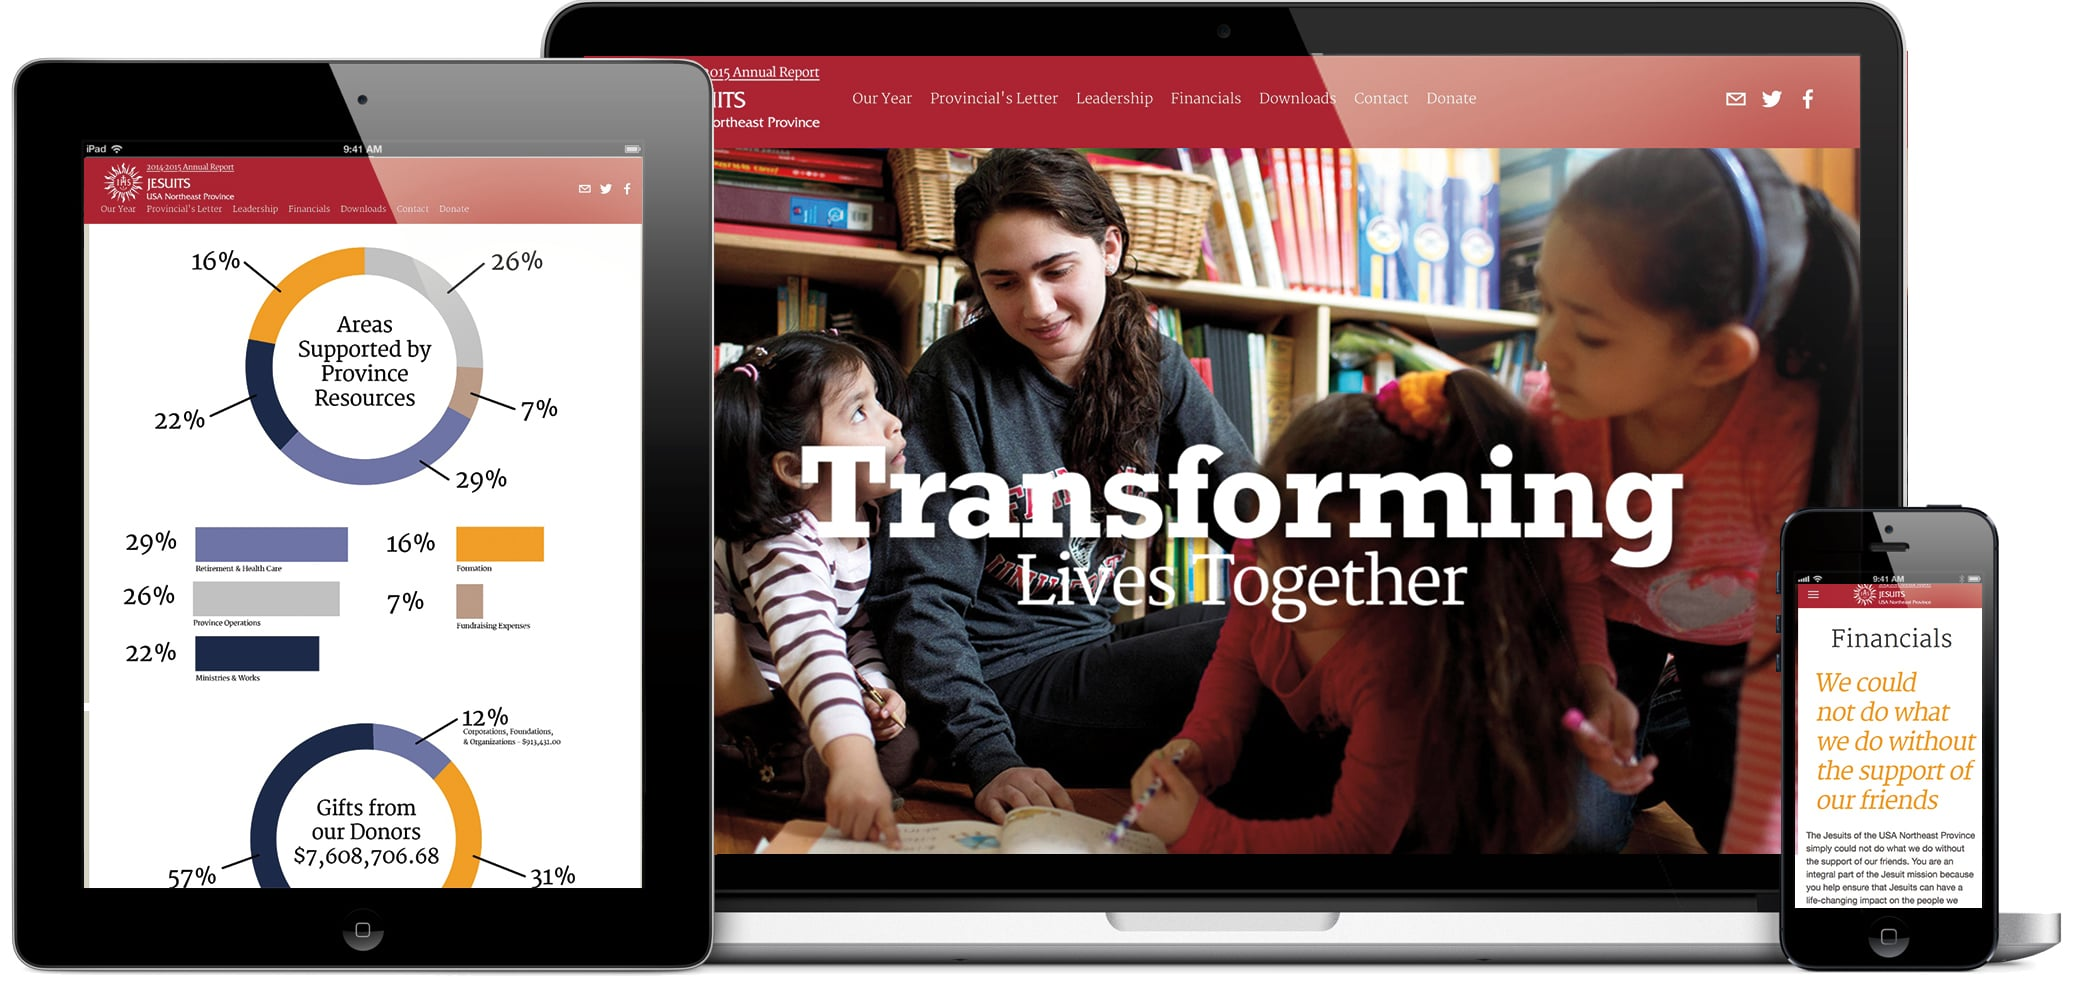 A mobile responsive website design that is smart and modern. Visit site:  http://www.jesuitstransforminglives.org